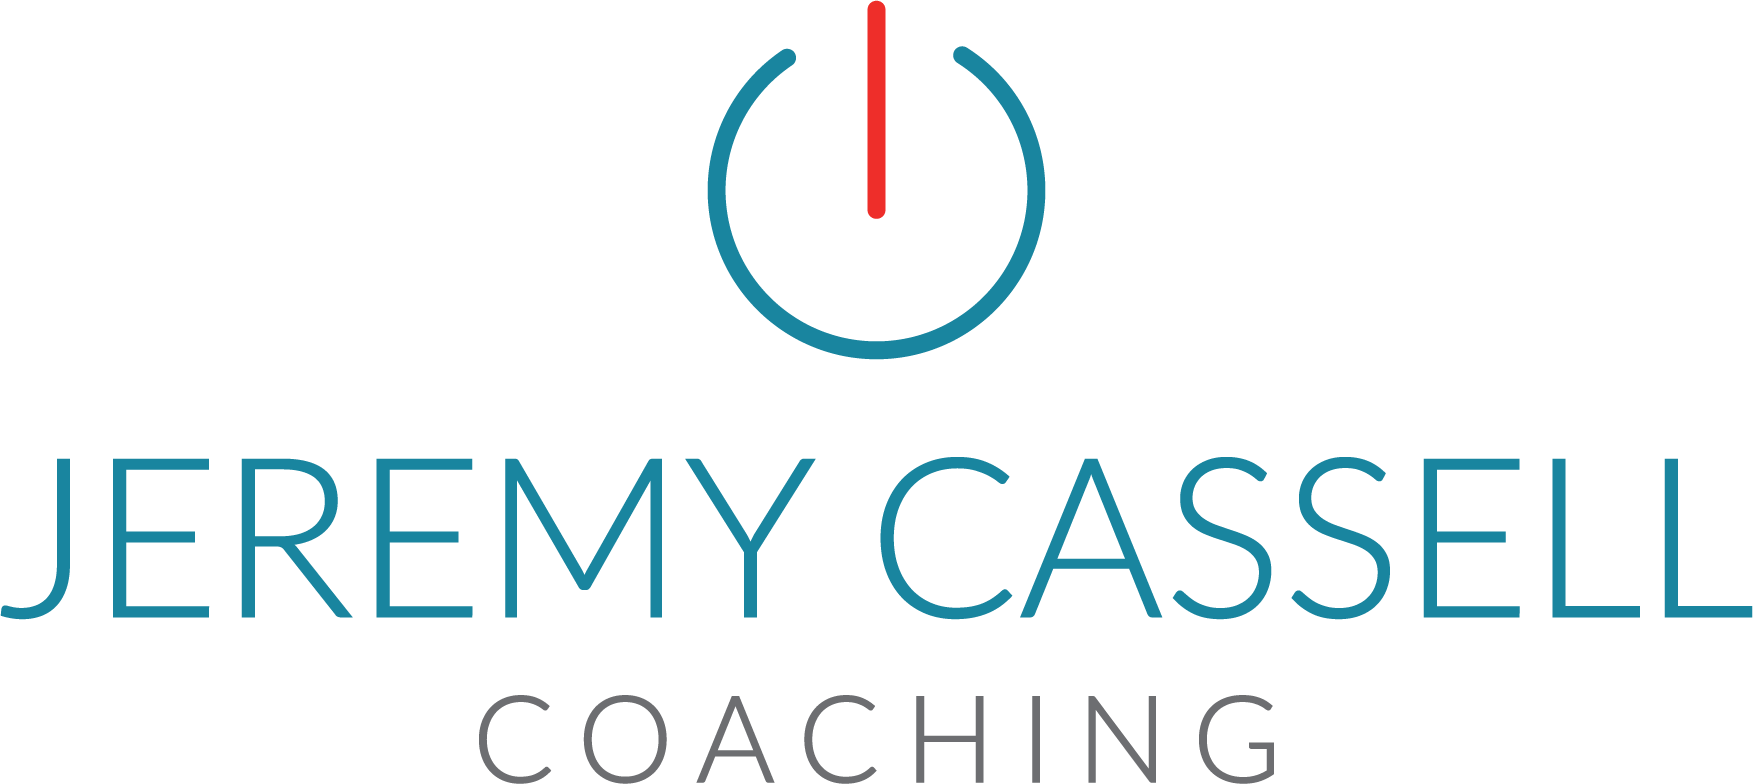 Jeremy Cassell Coaching